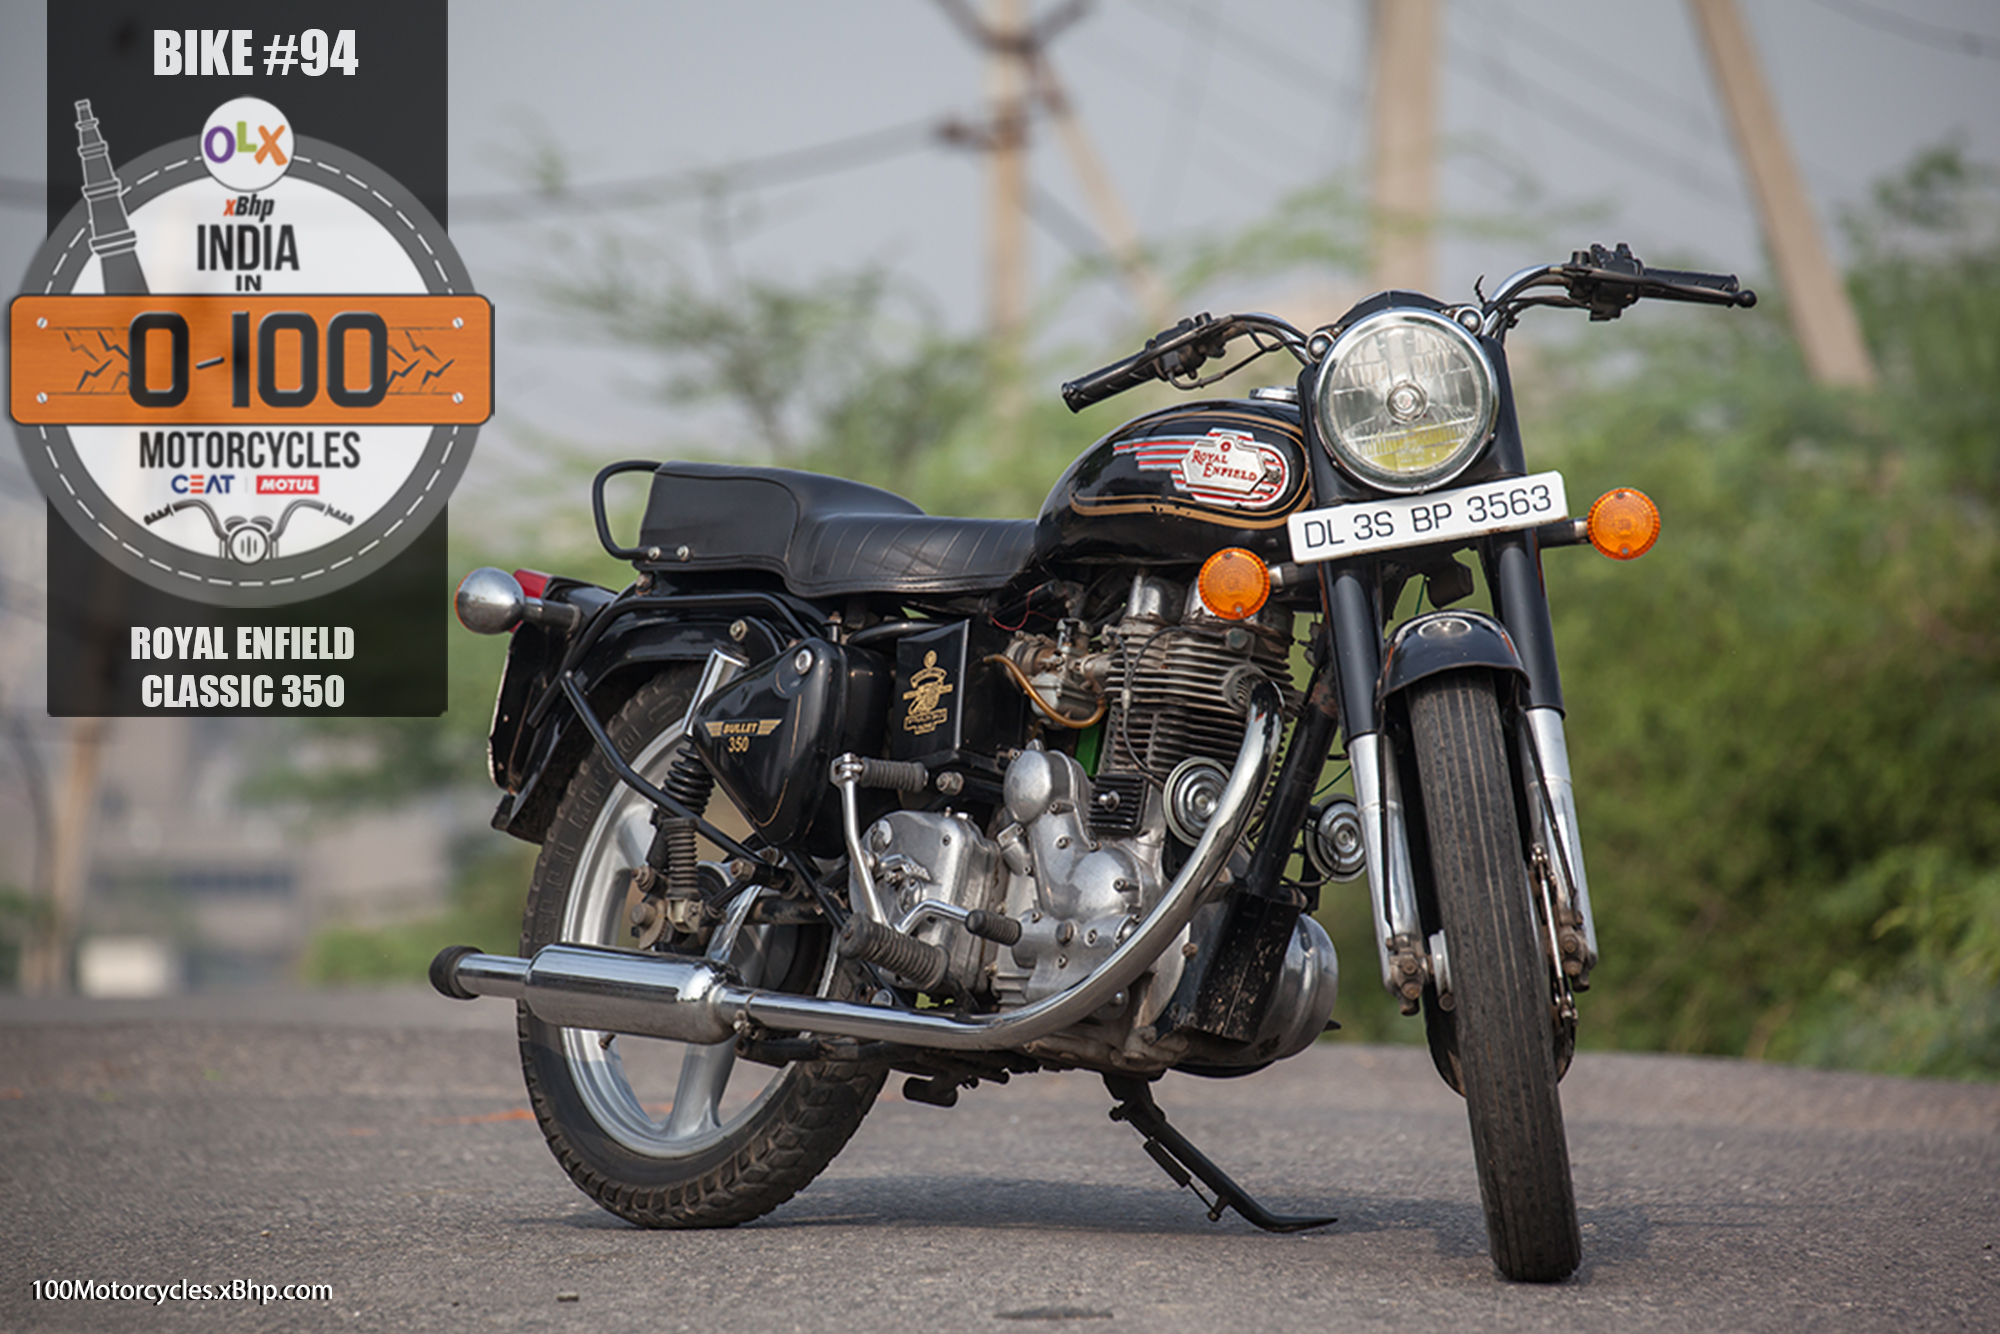 Bike #94: Royal Enfield Bullet Cast Iron - Thumping away into